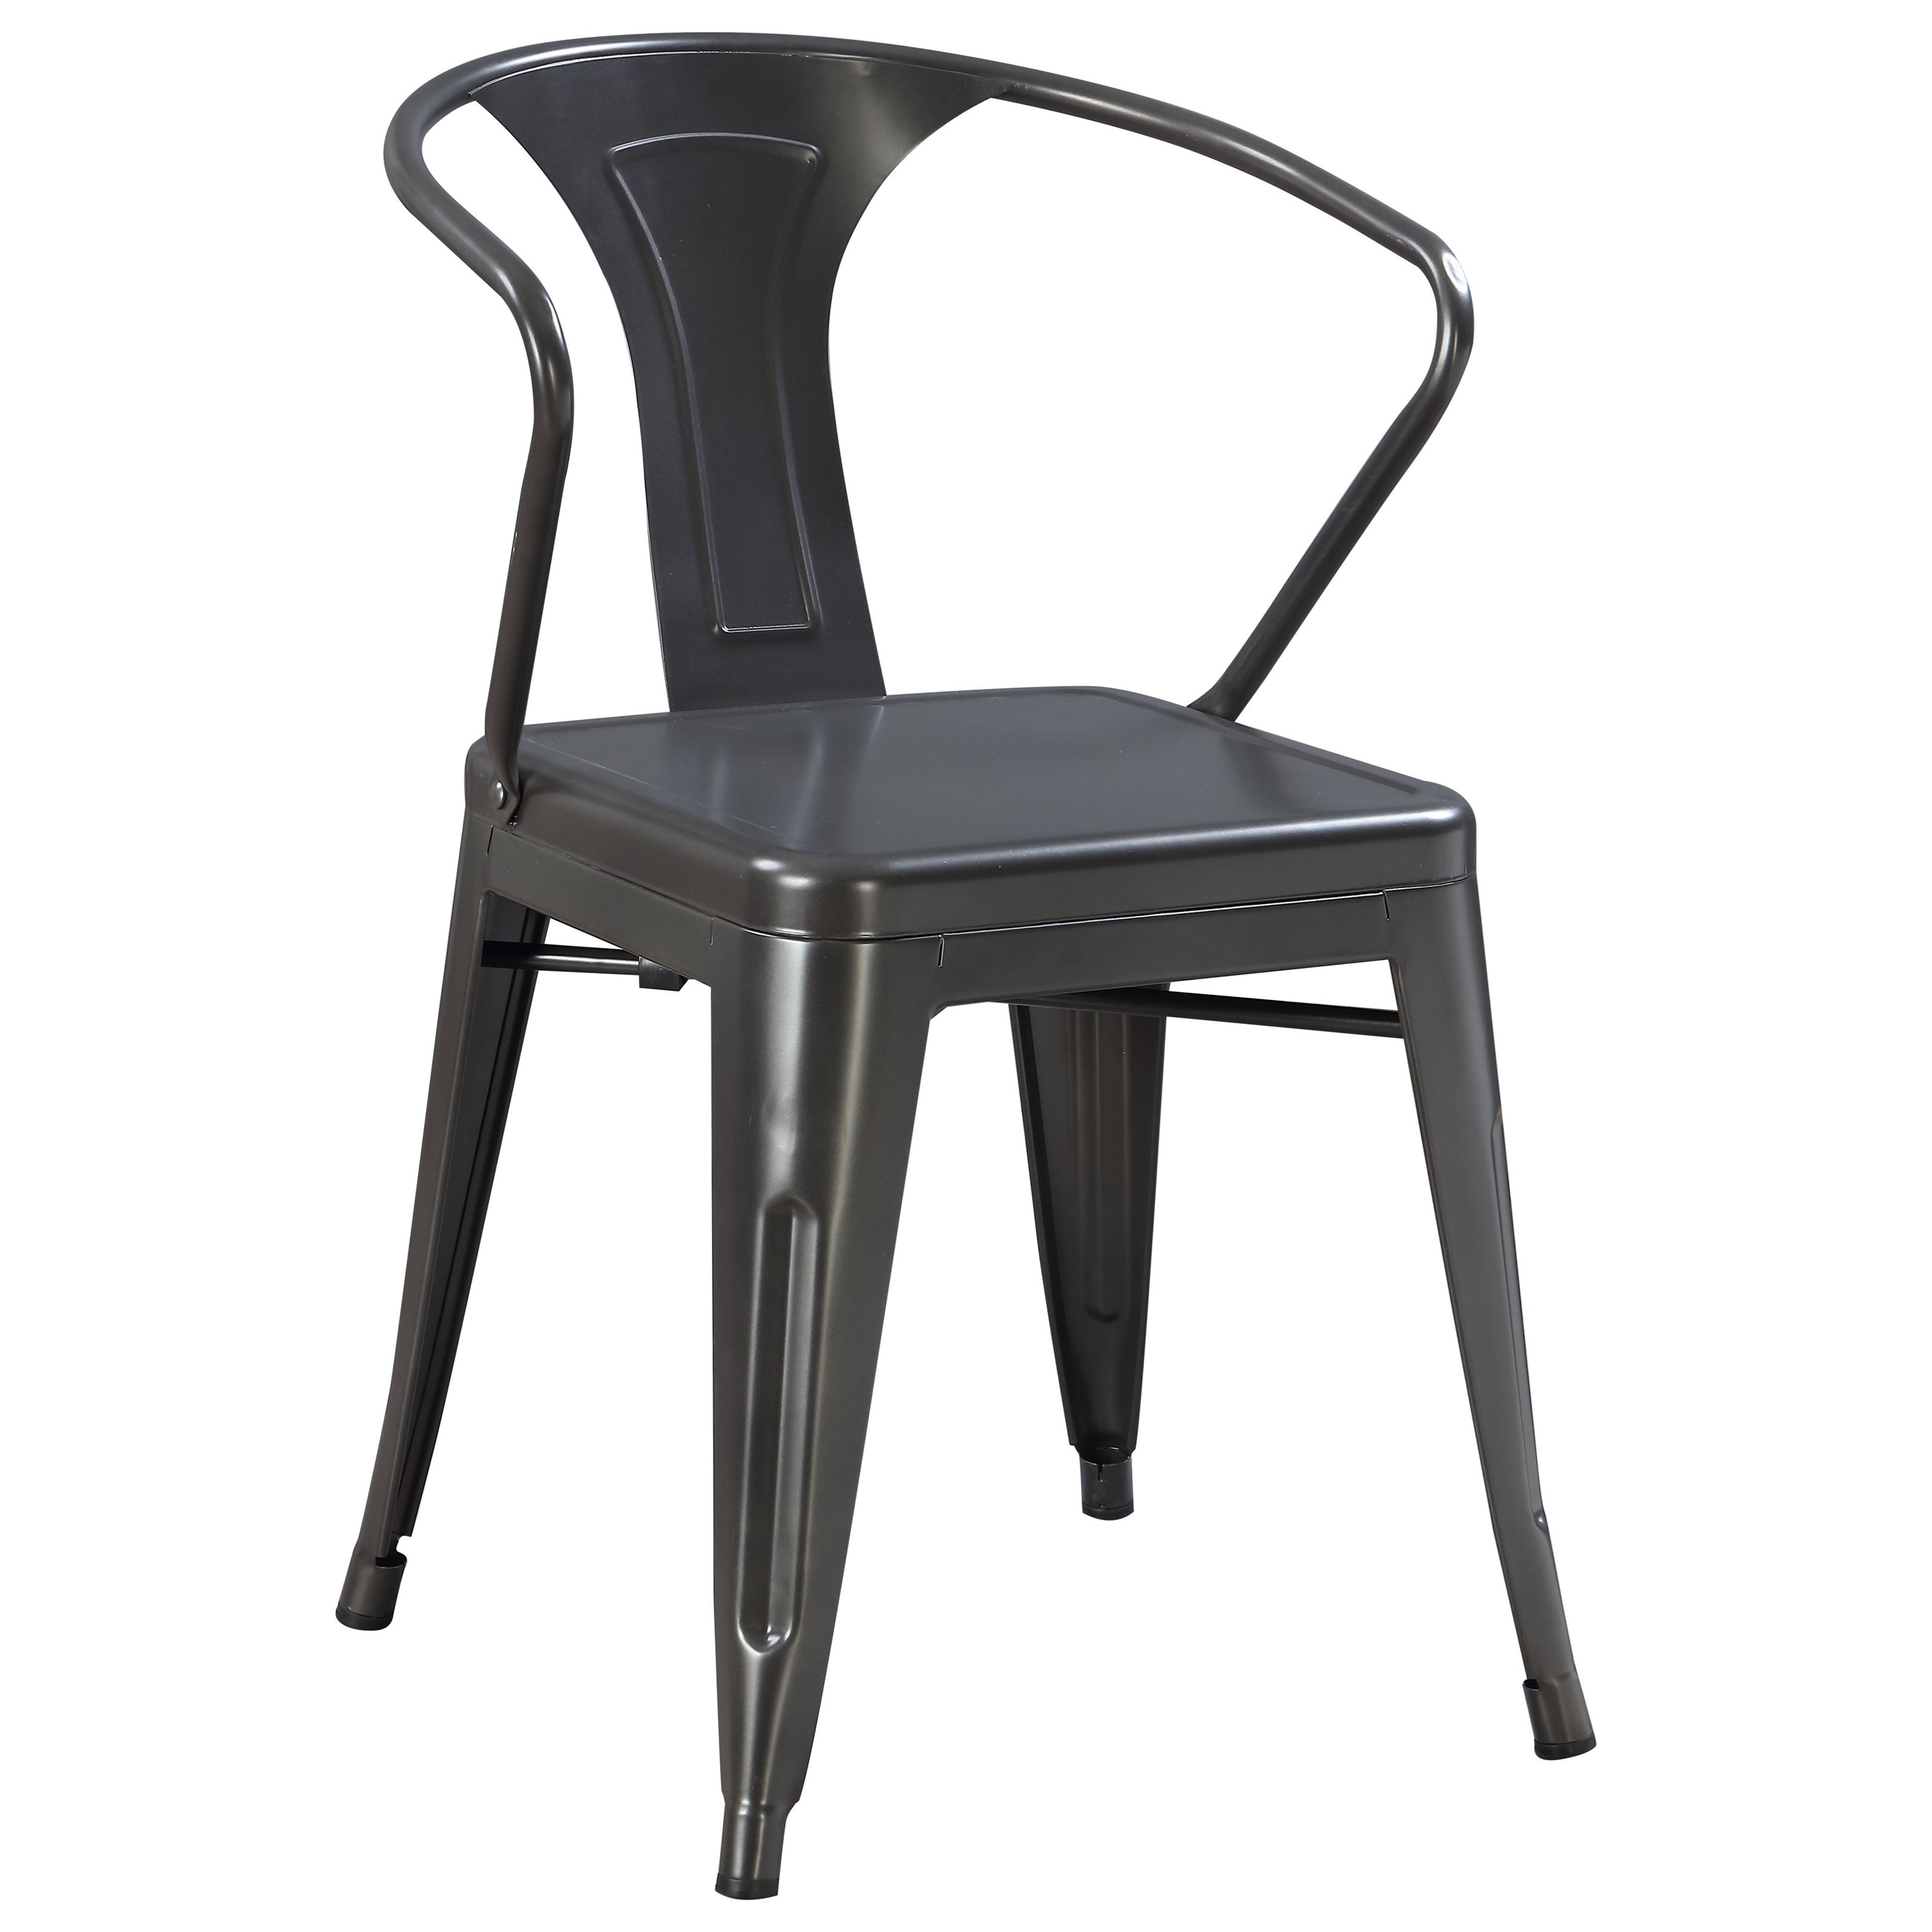 Dakota III Dining Chair by Emerald at Suburban Furniture